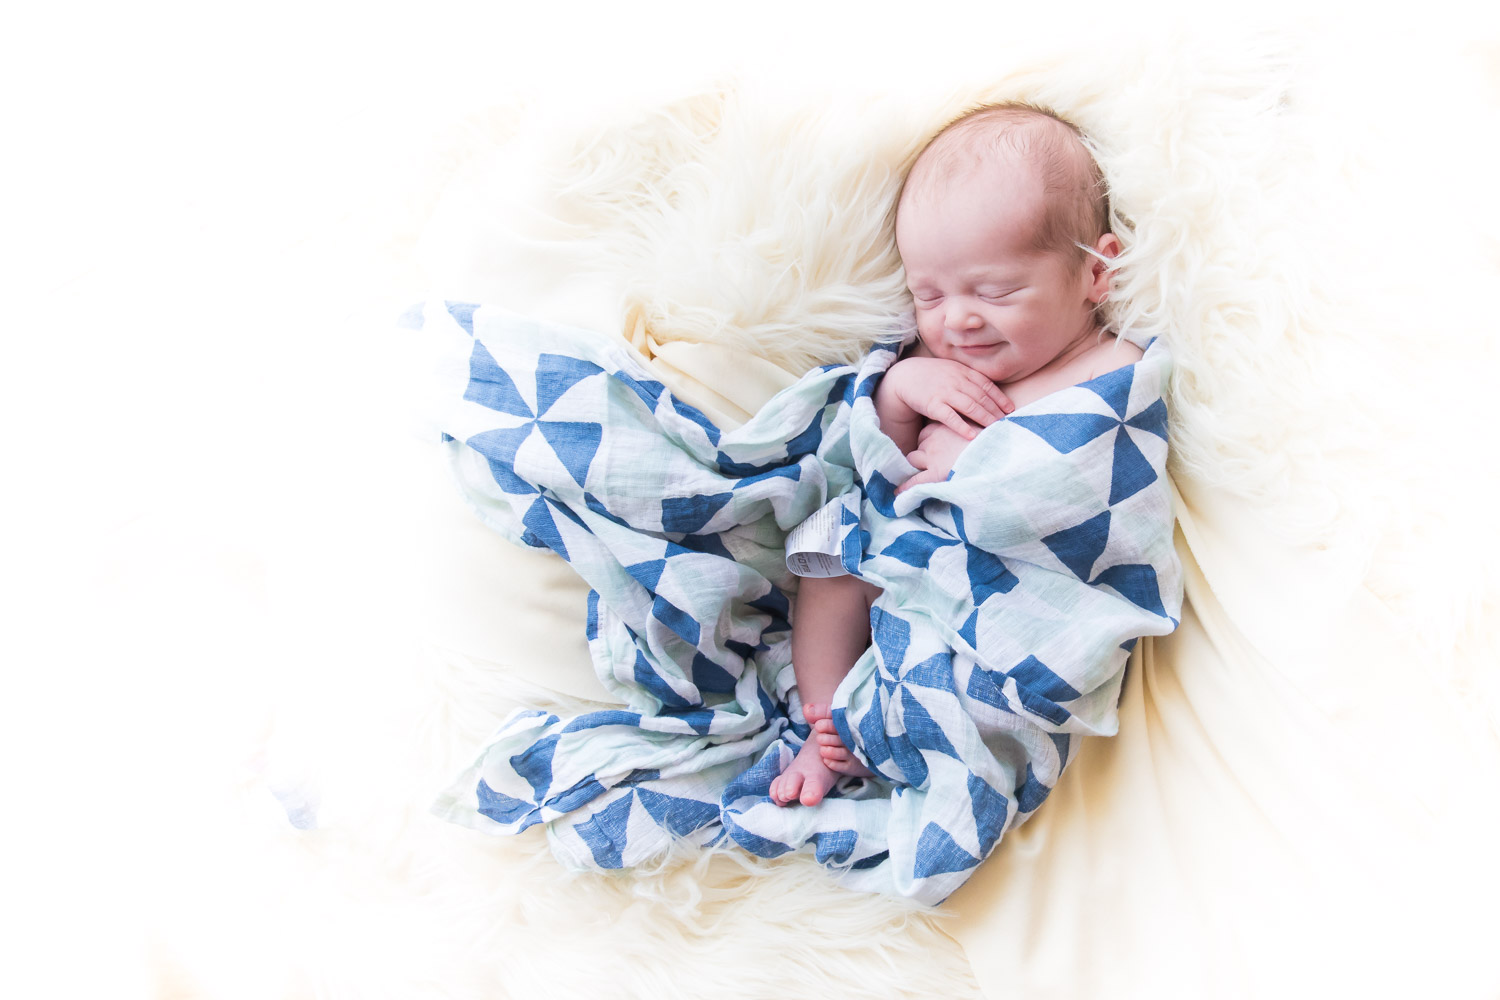 michigan baby photographer, south lyon newborn baby photographer